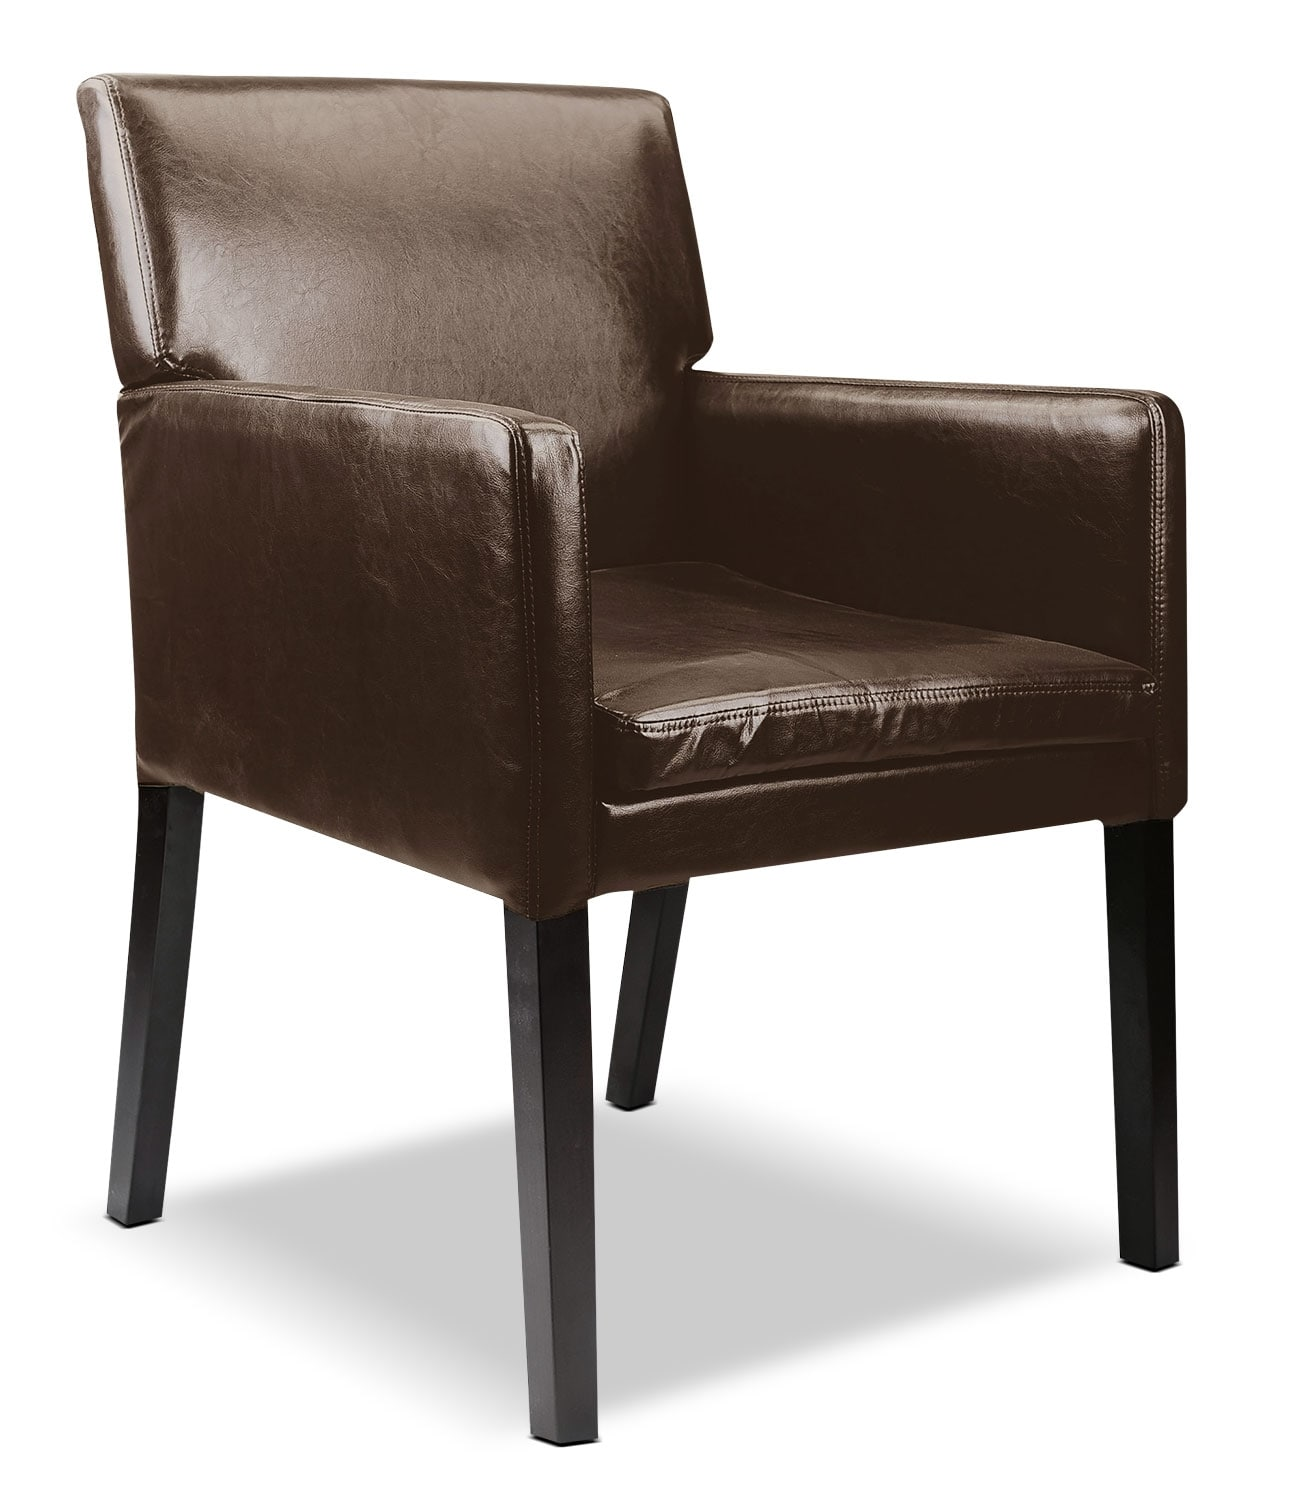 LAD Bonded Leather Accent Chair – Dark Brown